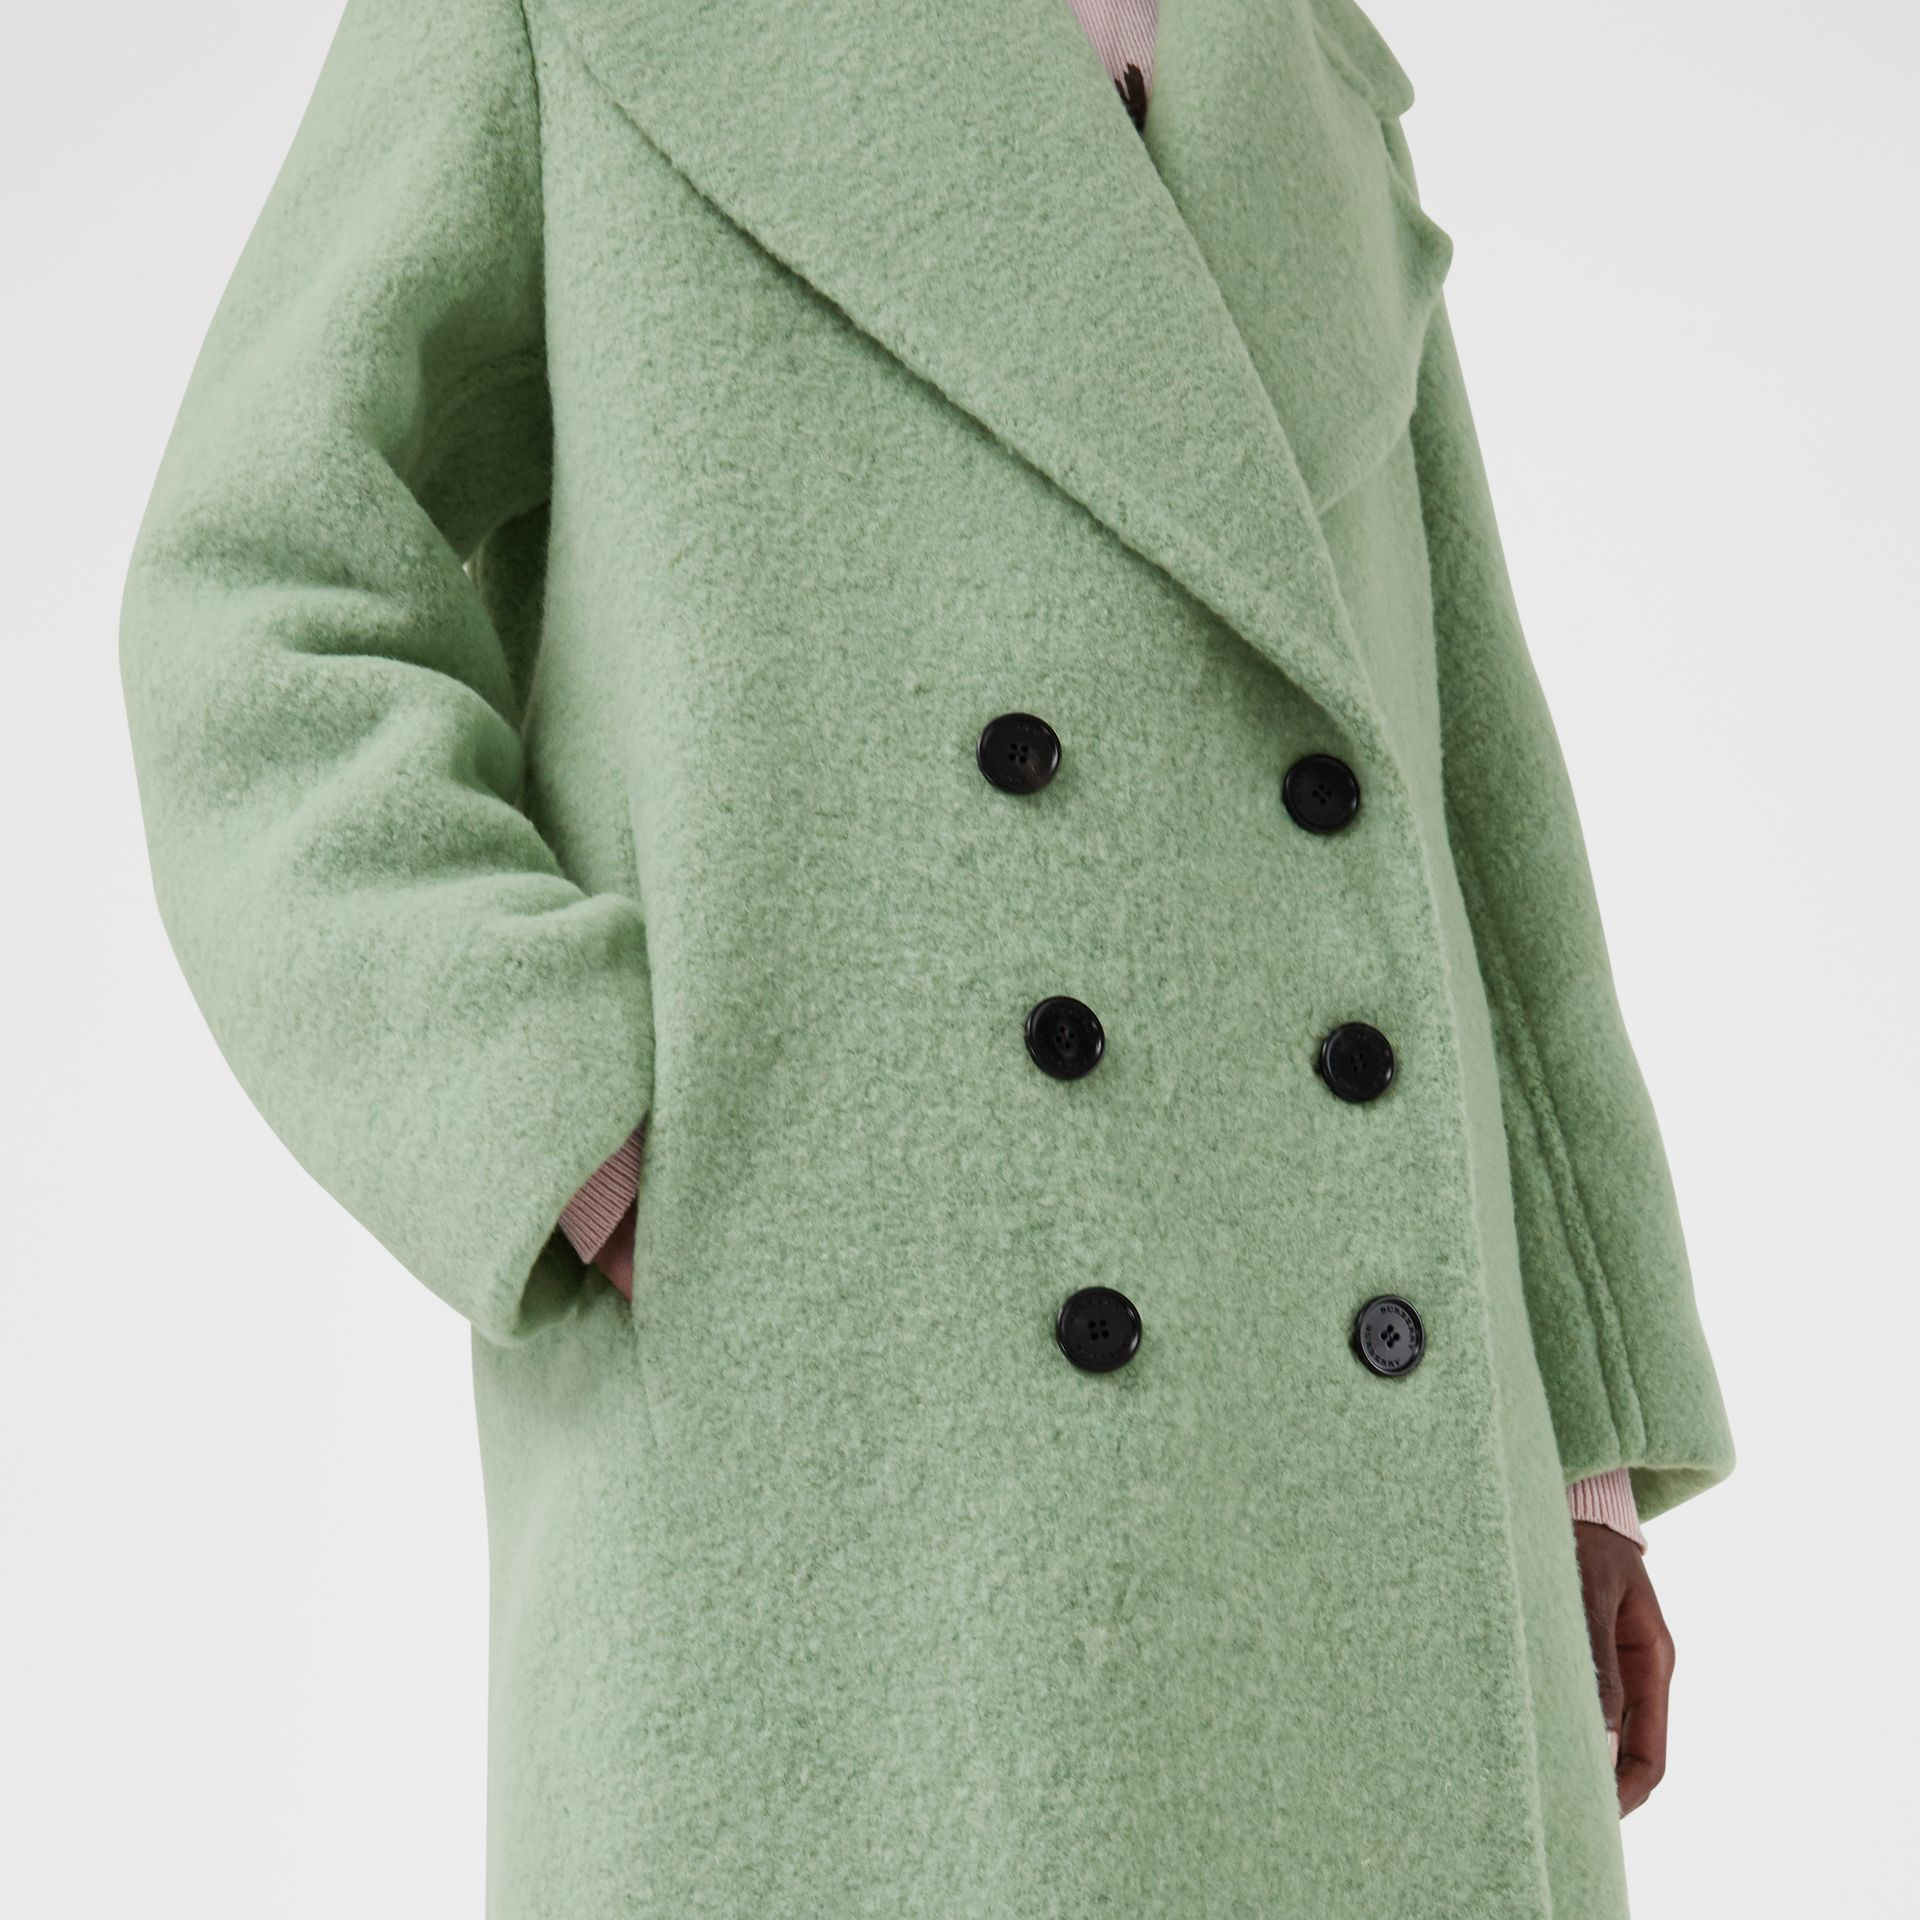 Double-faced Wool Alpaca Blend Oversized Coat in Celadon Green - Women | Burberry - gallery image 1